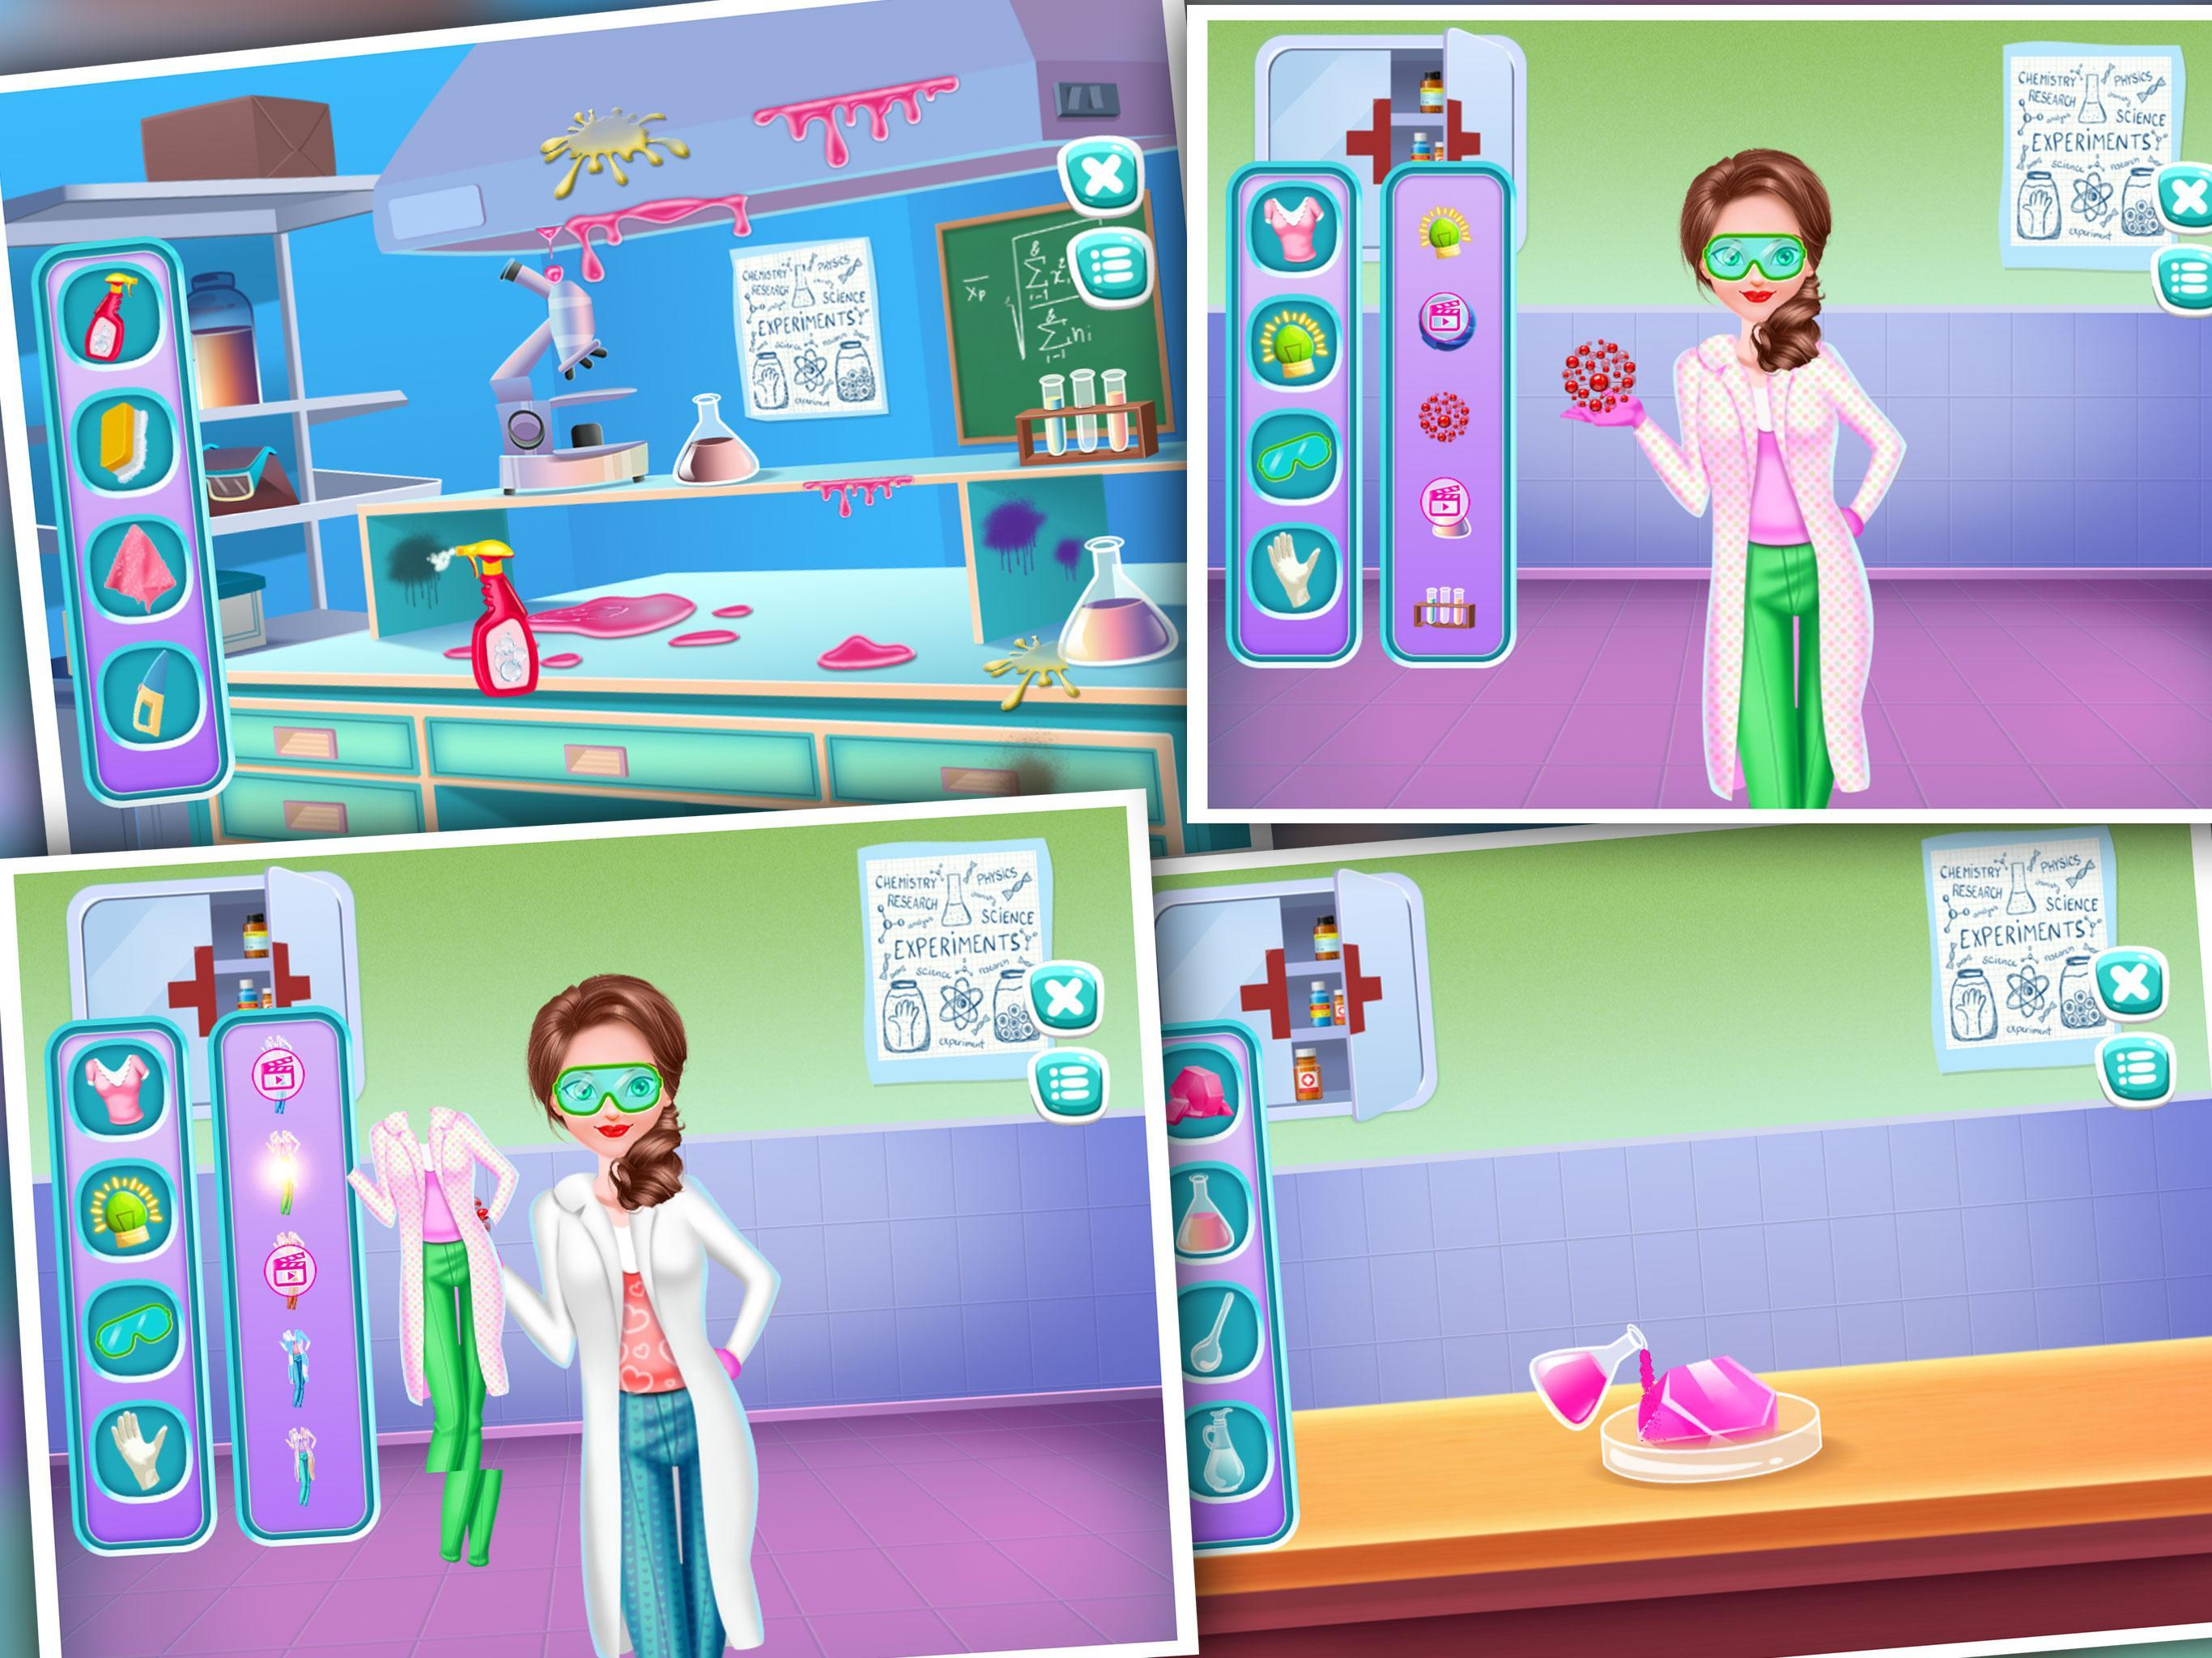 Amazing science lab experiment - fun activities for Android - APK